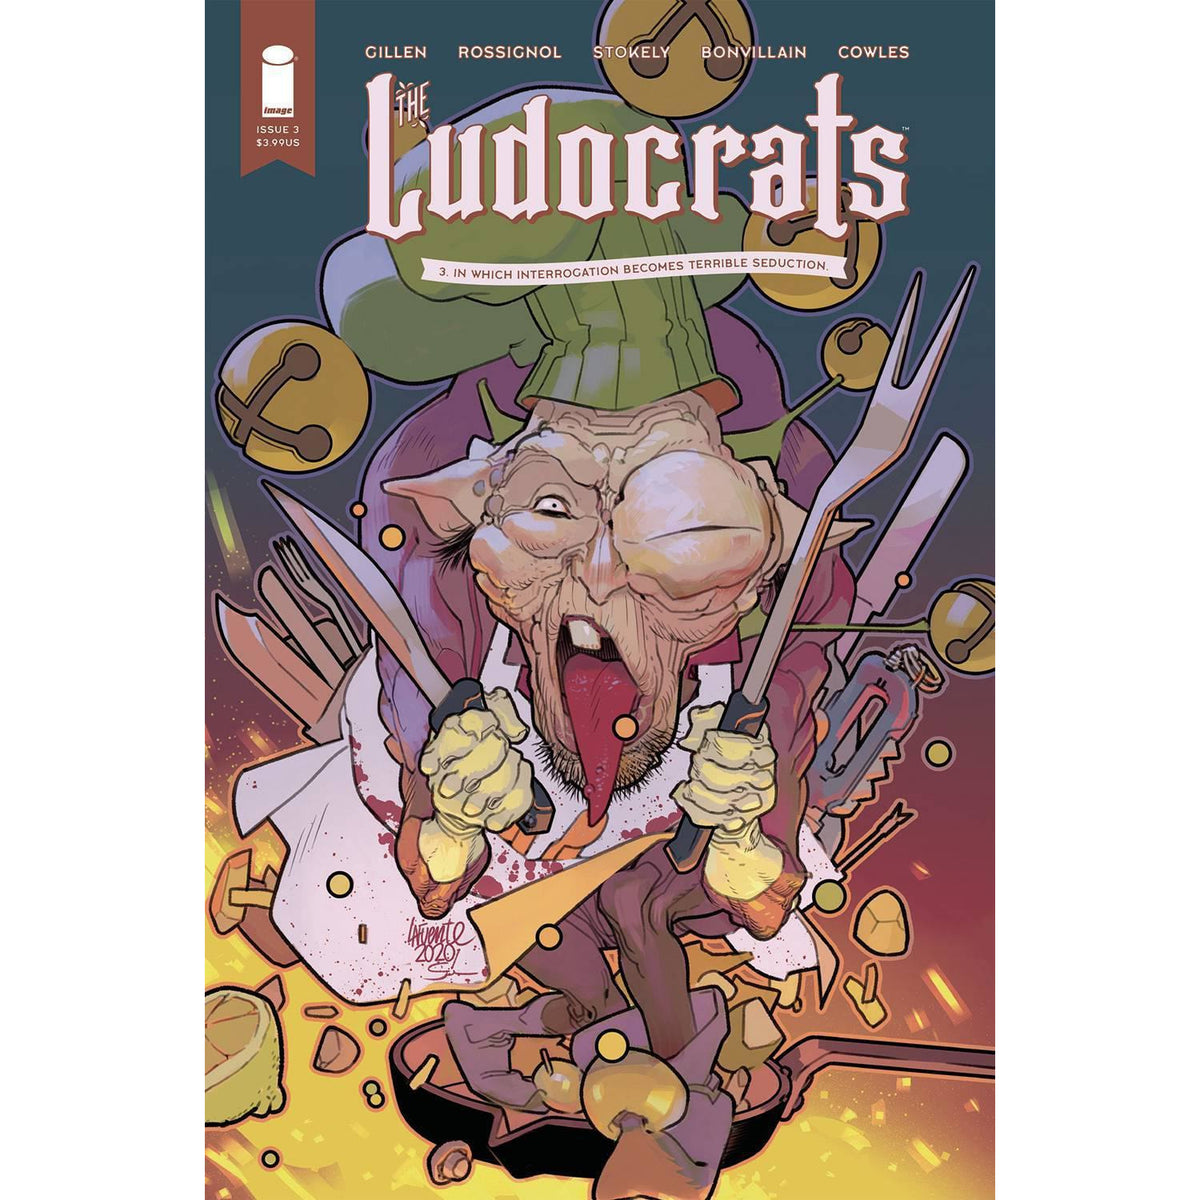 LUDOCRATS #3 (OF 5) COVER B LAFUENTE